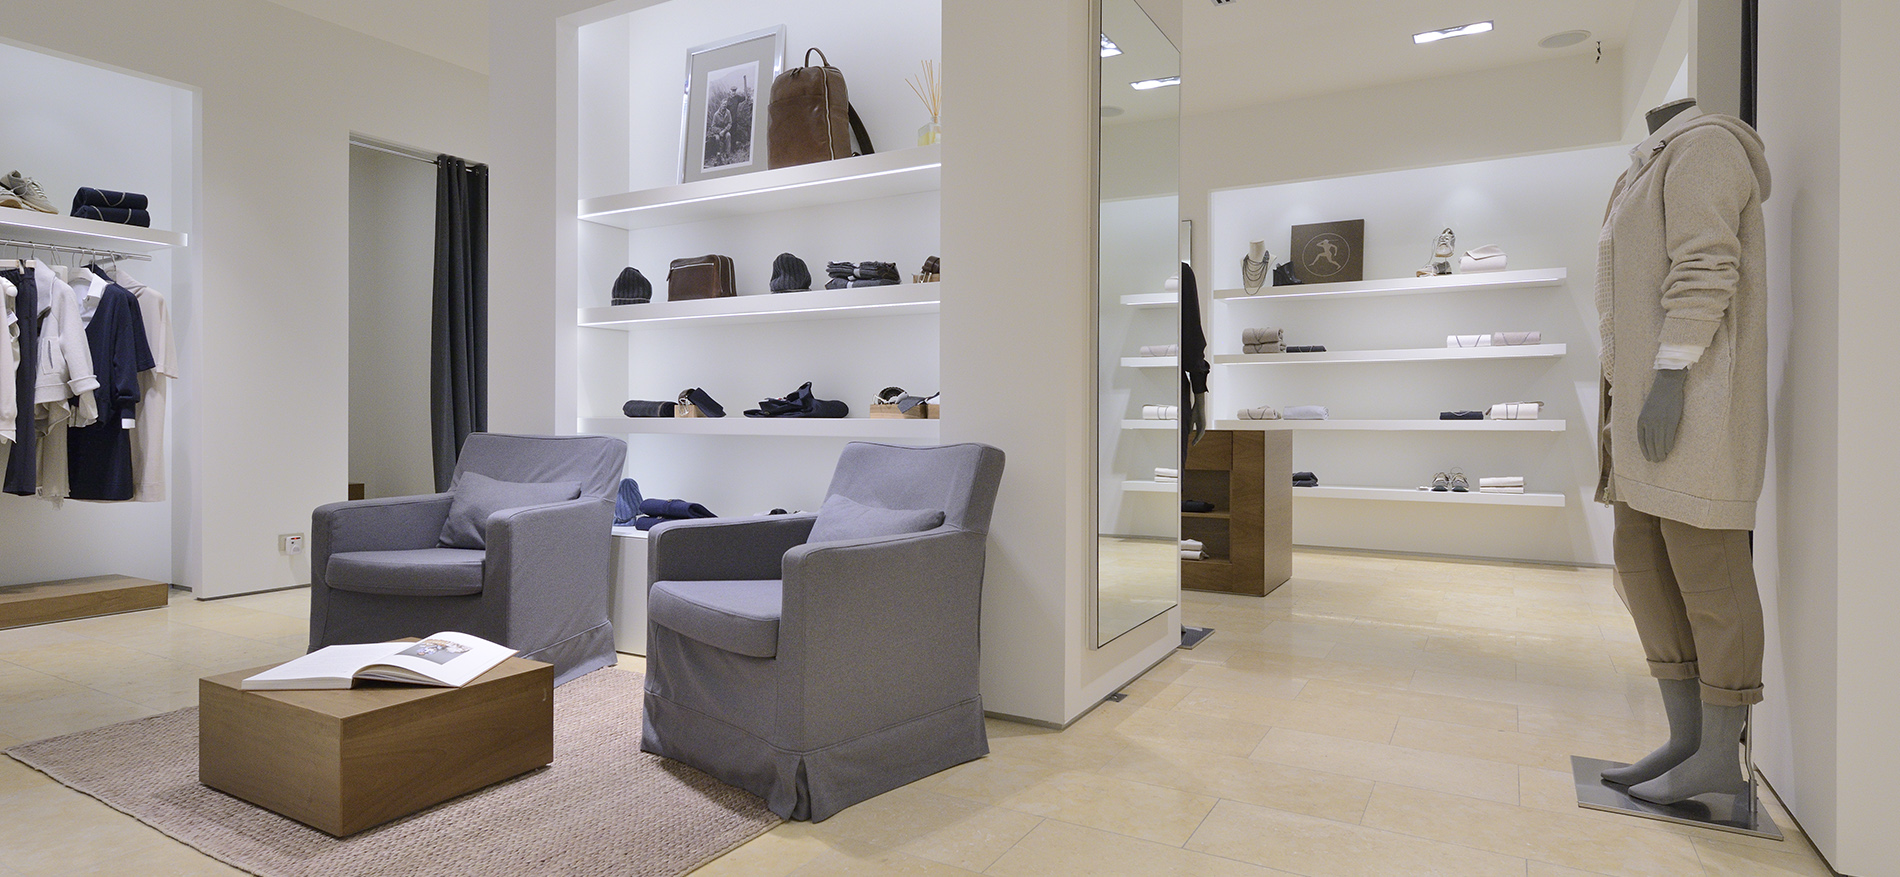 Agencement int rieur pour la boutique de mode for Mode decoration interieur